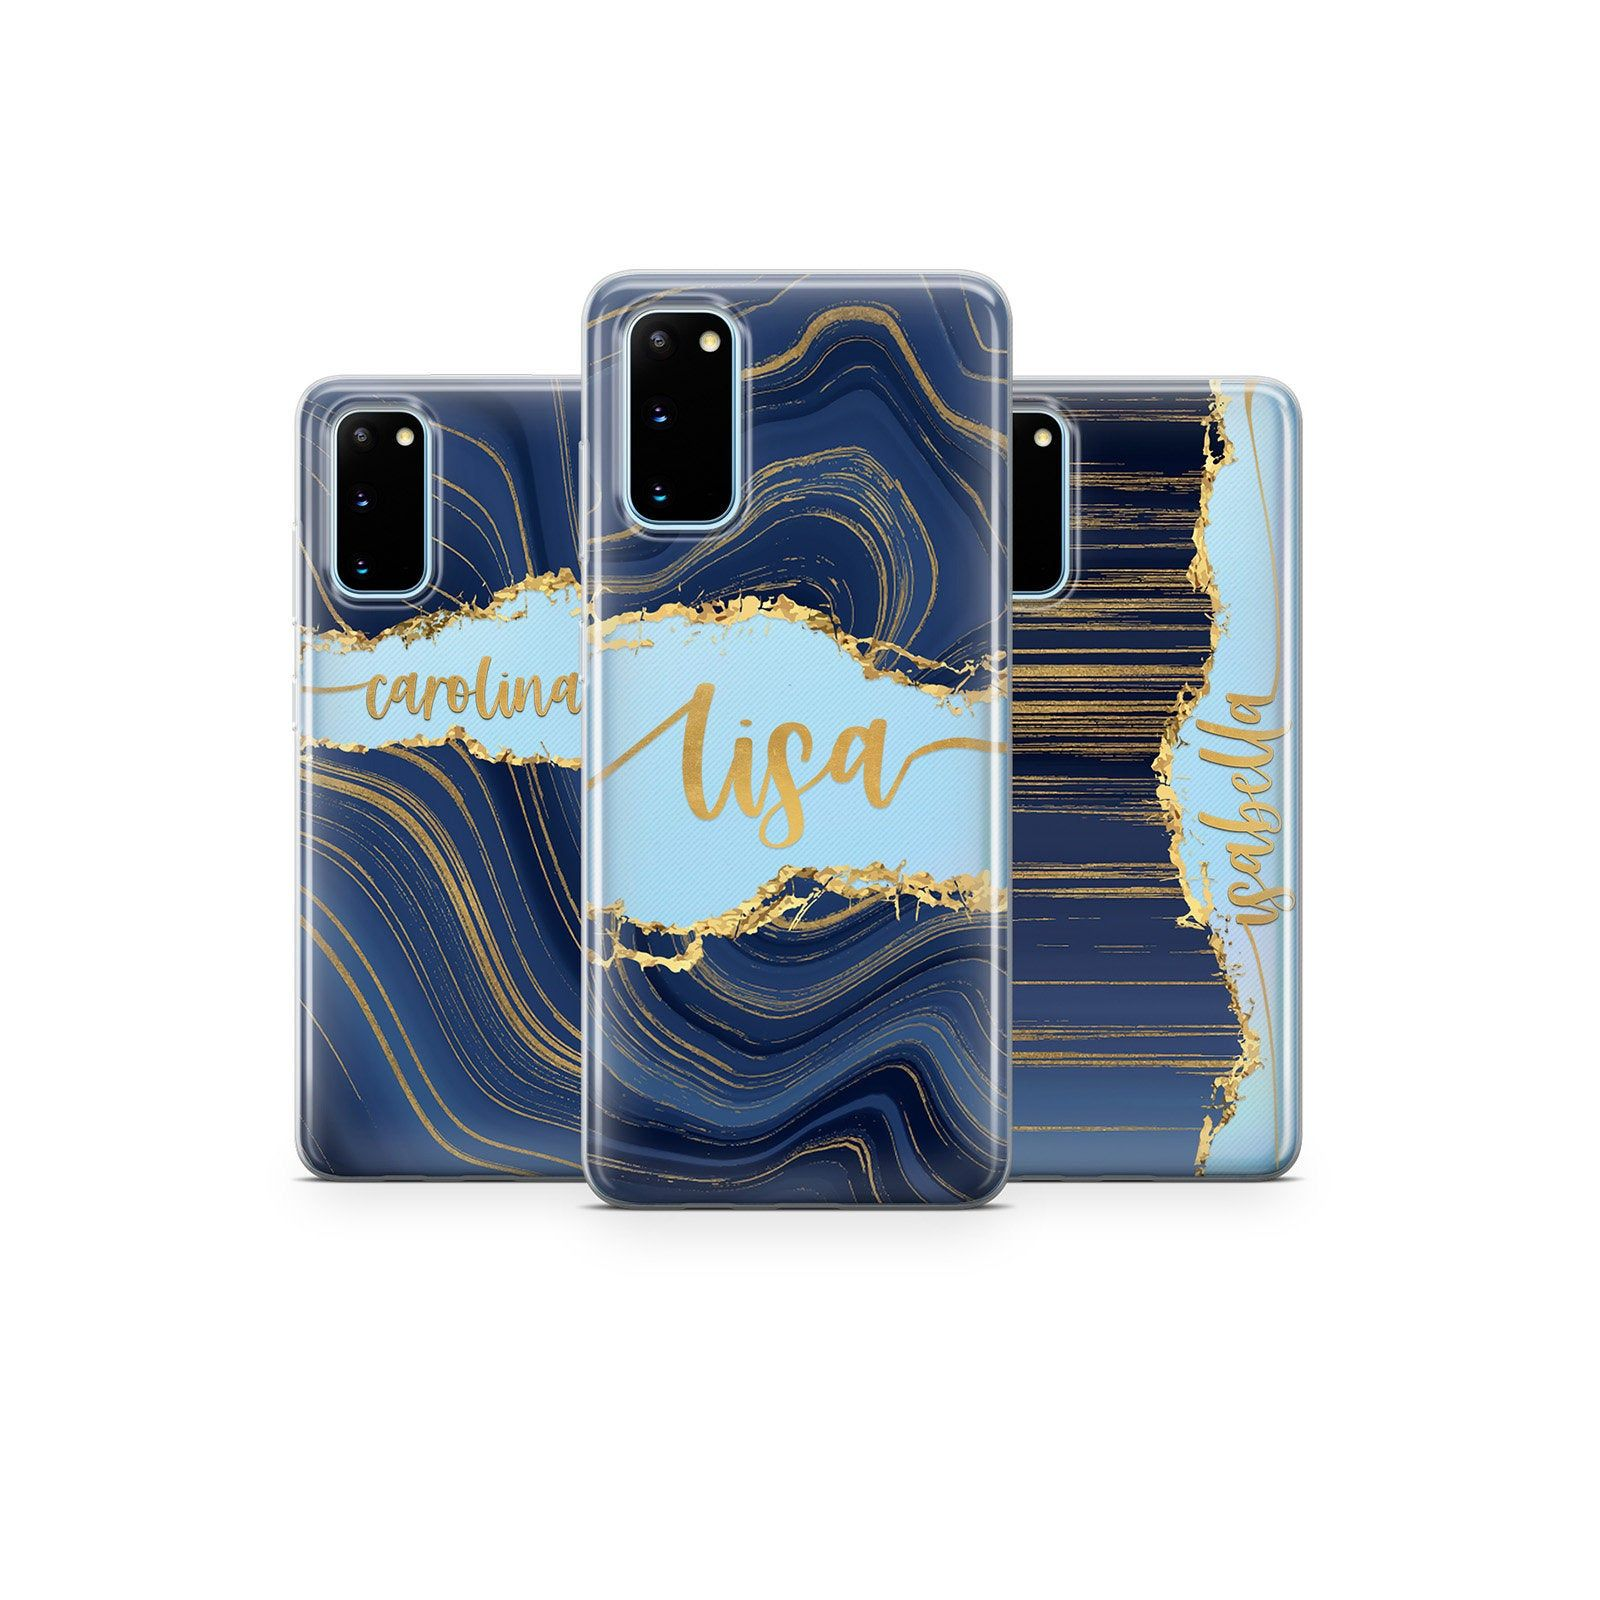 Custom Name Phone Case Marble Blue Samsung A51 A50 Samsung Etsy In 2021 Phone Cases Phone Cases Marble Samsung Phone Cases